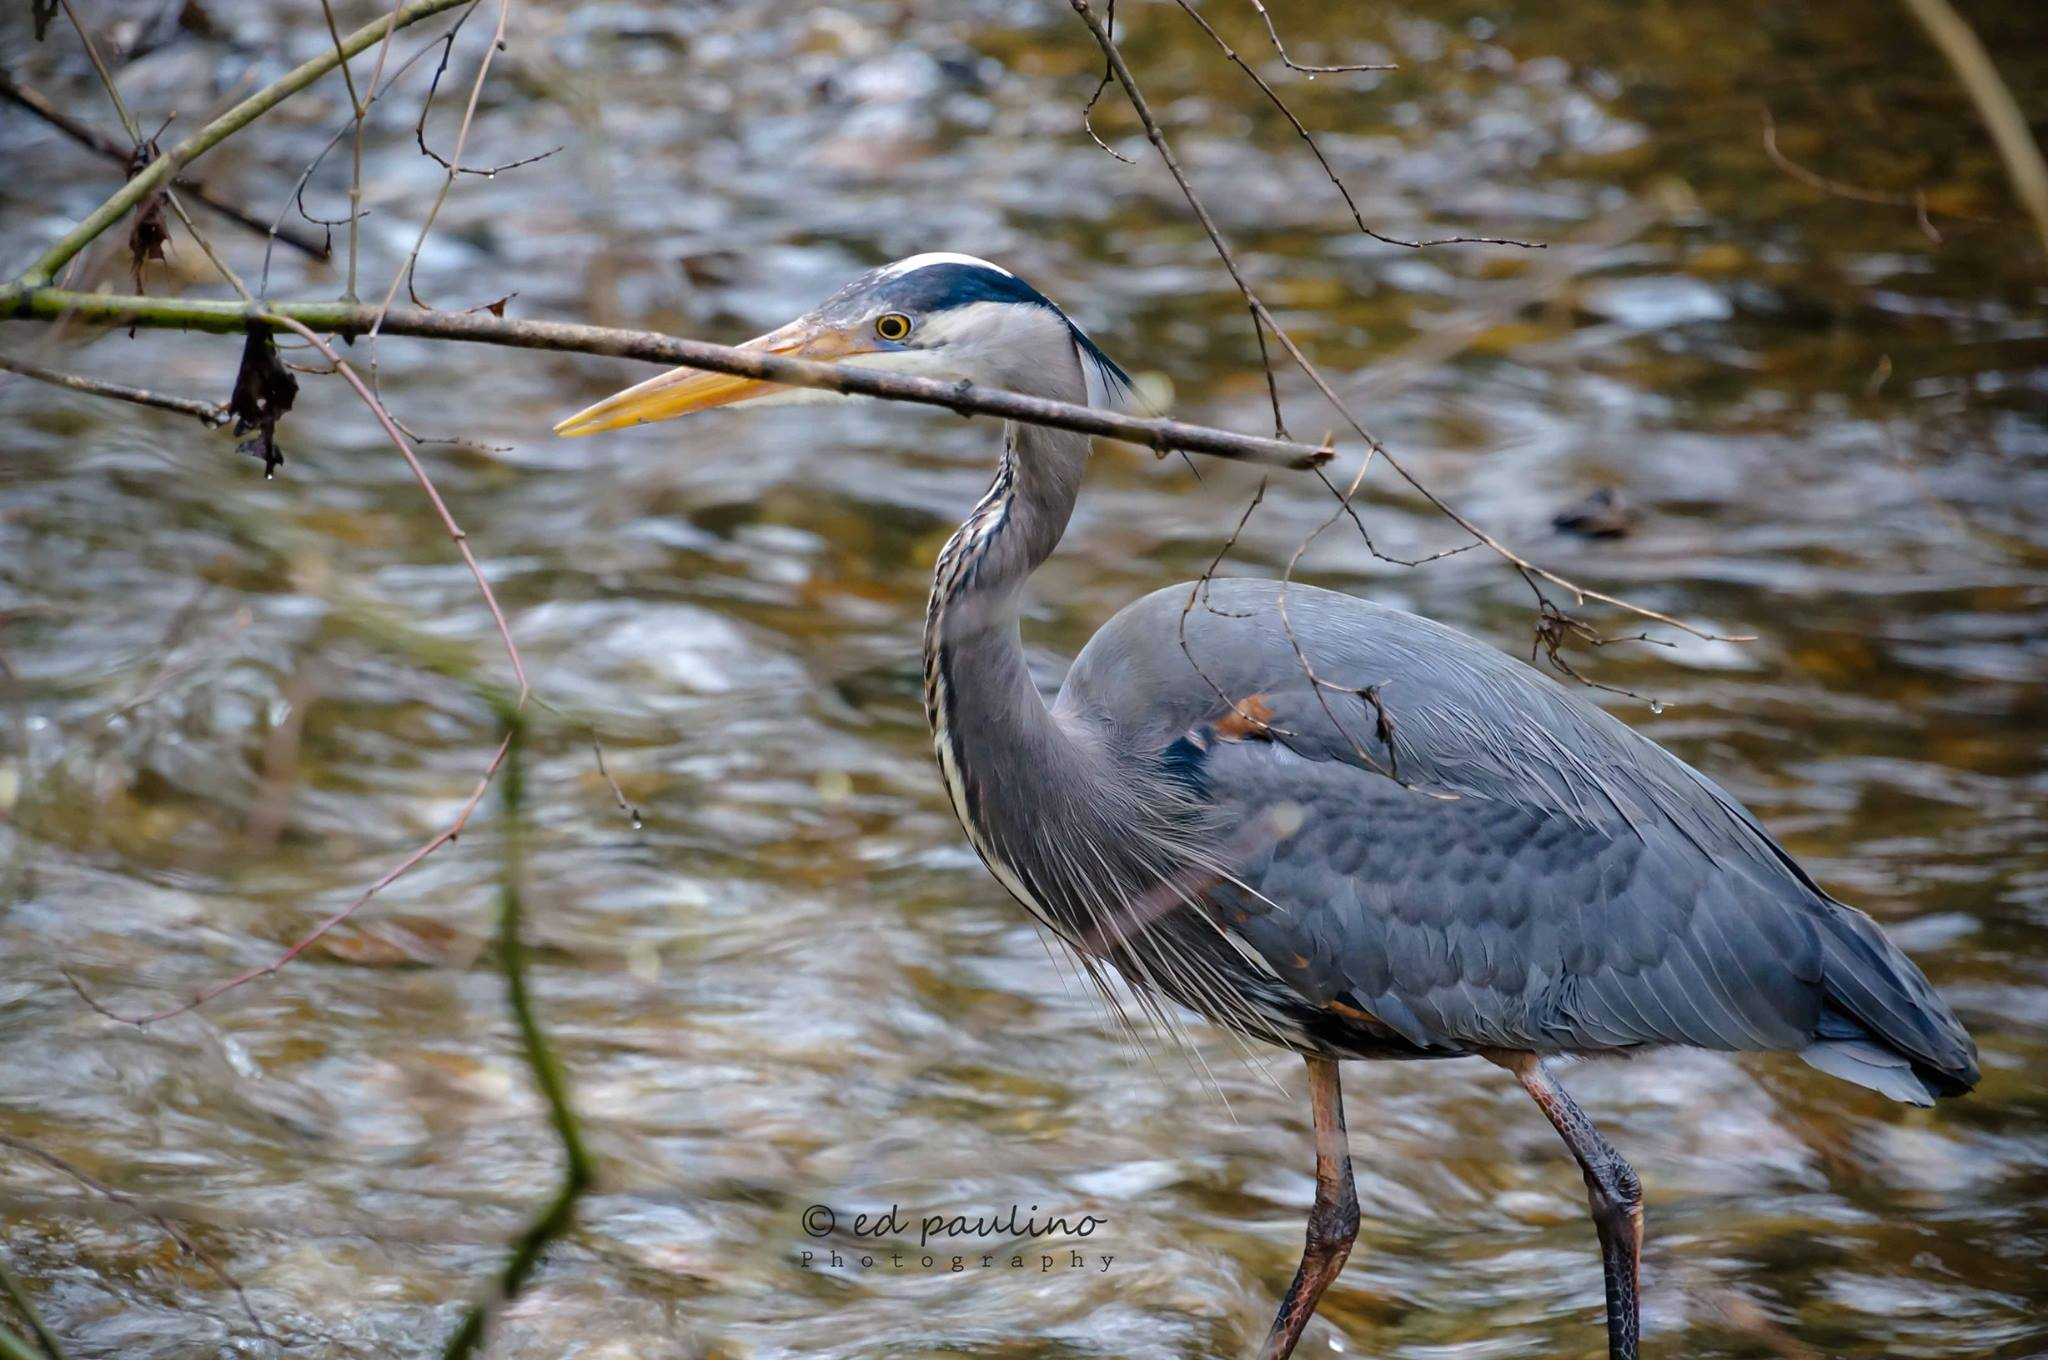 A blue heron at Hoy Creek, Coquitlam. (Photo: Ed Paulino / HSWS)